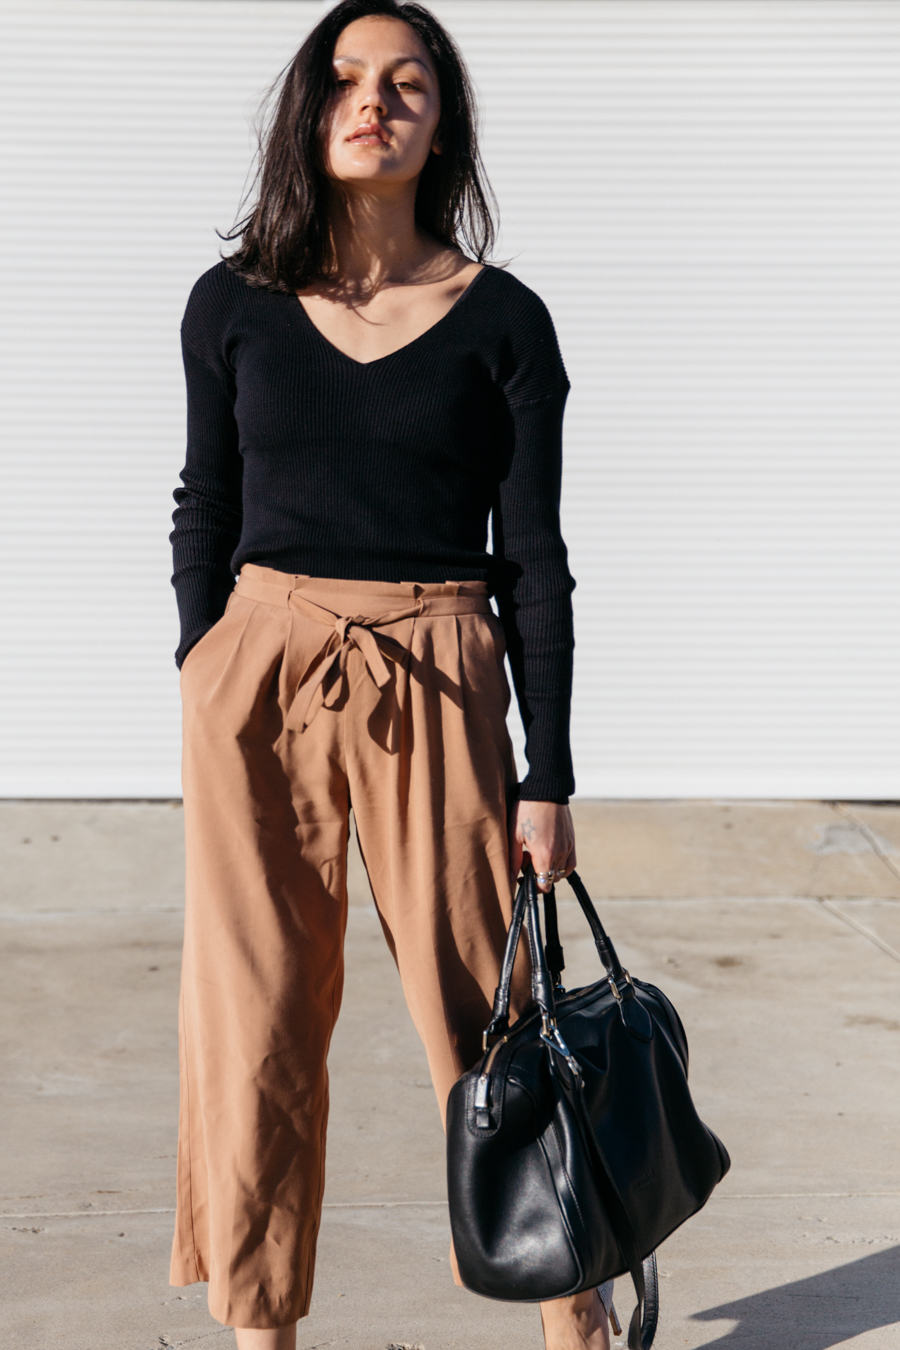 Brown culottes with black long sleeve top.